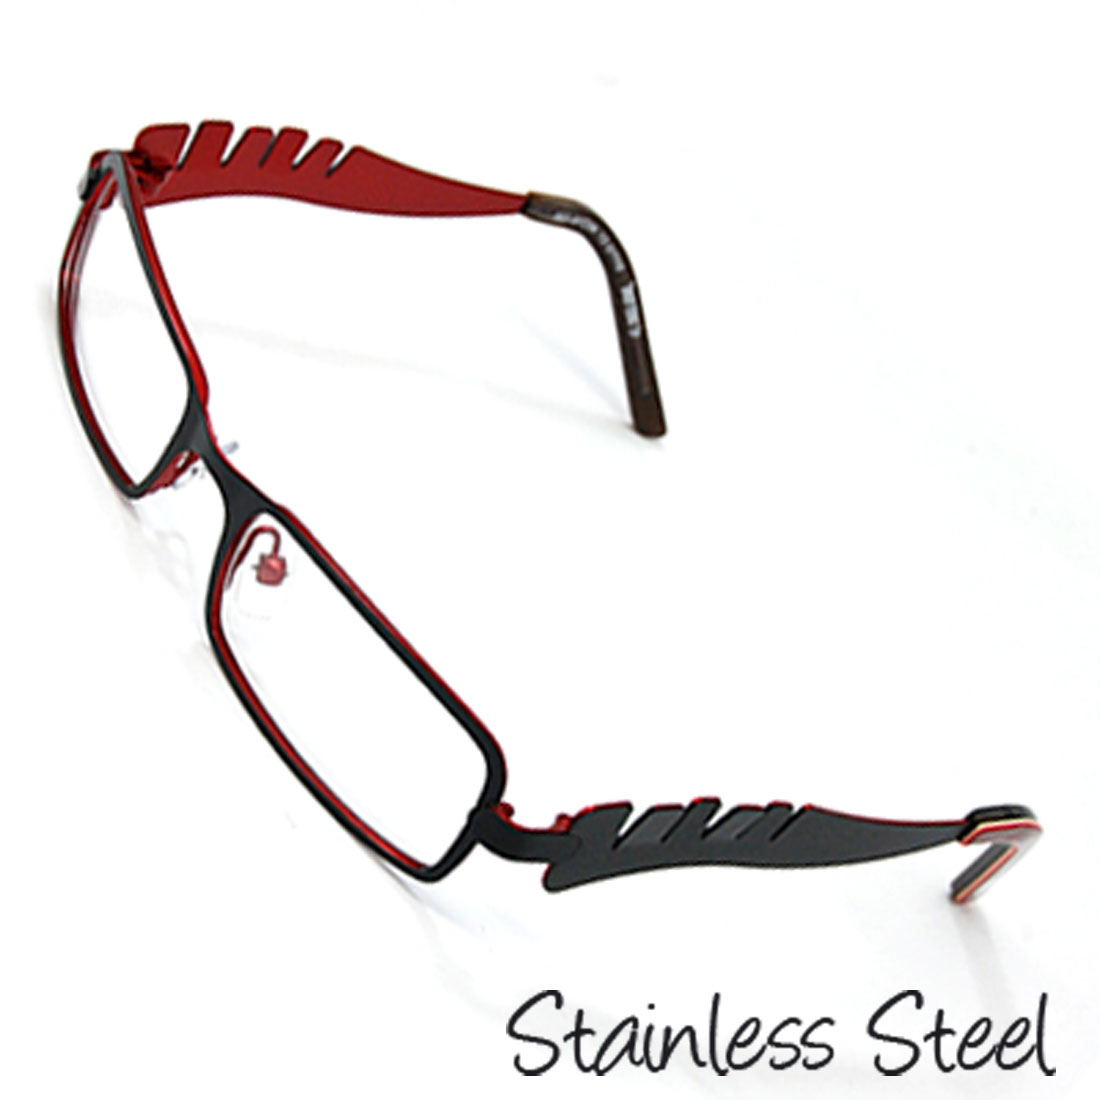 Kids' Stainless Steel Optical Eyeglasses Frame Black